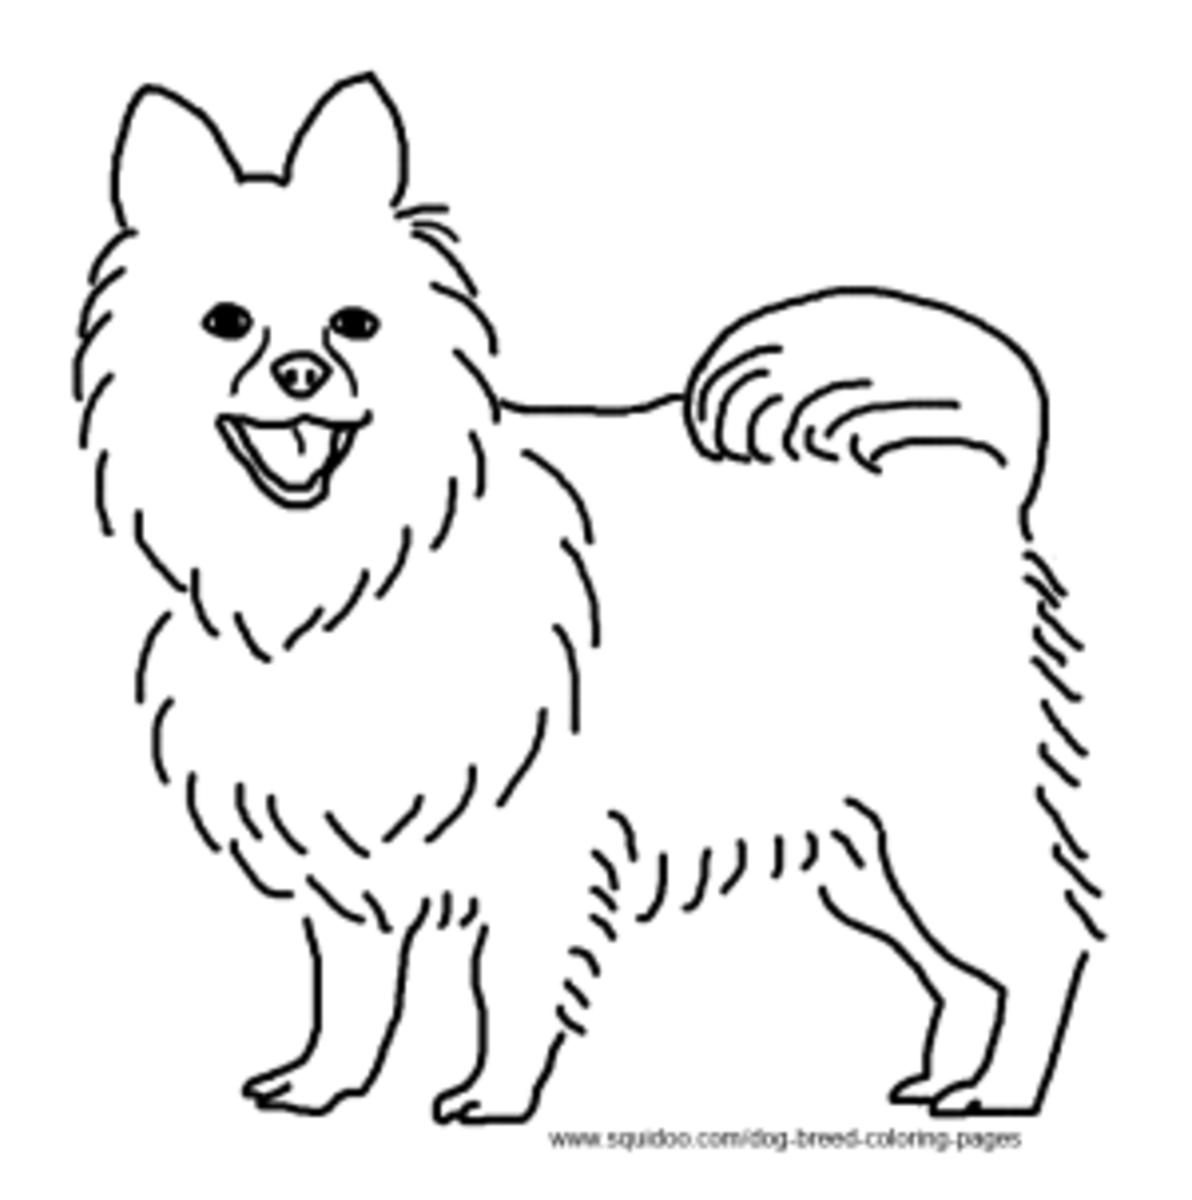 Teacup Pomeranian Coloring Page Realistic Coloring Pages Pomeranian Coloring Pages